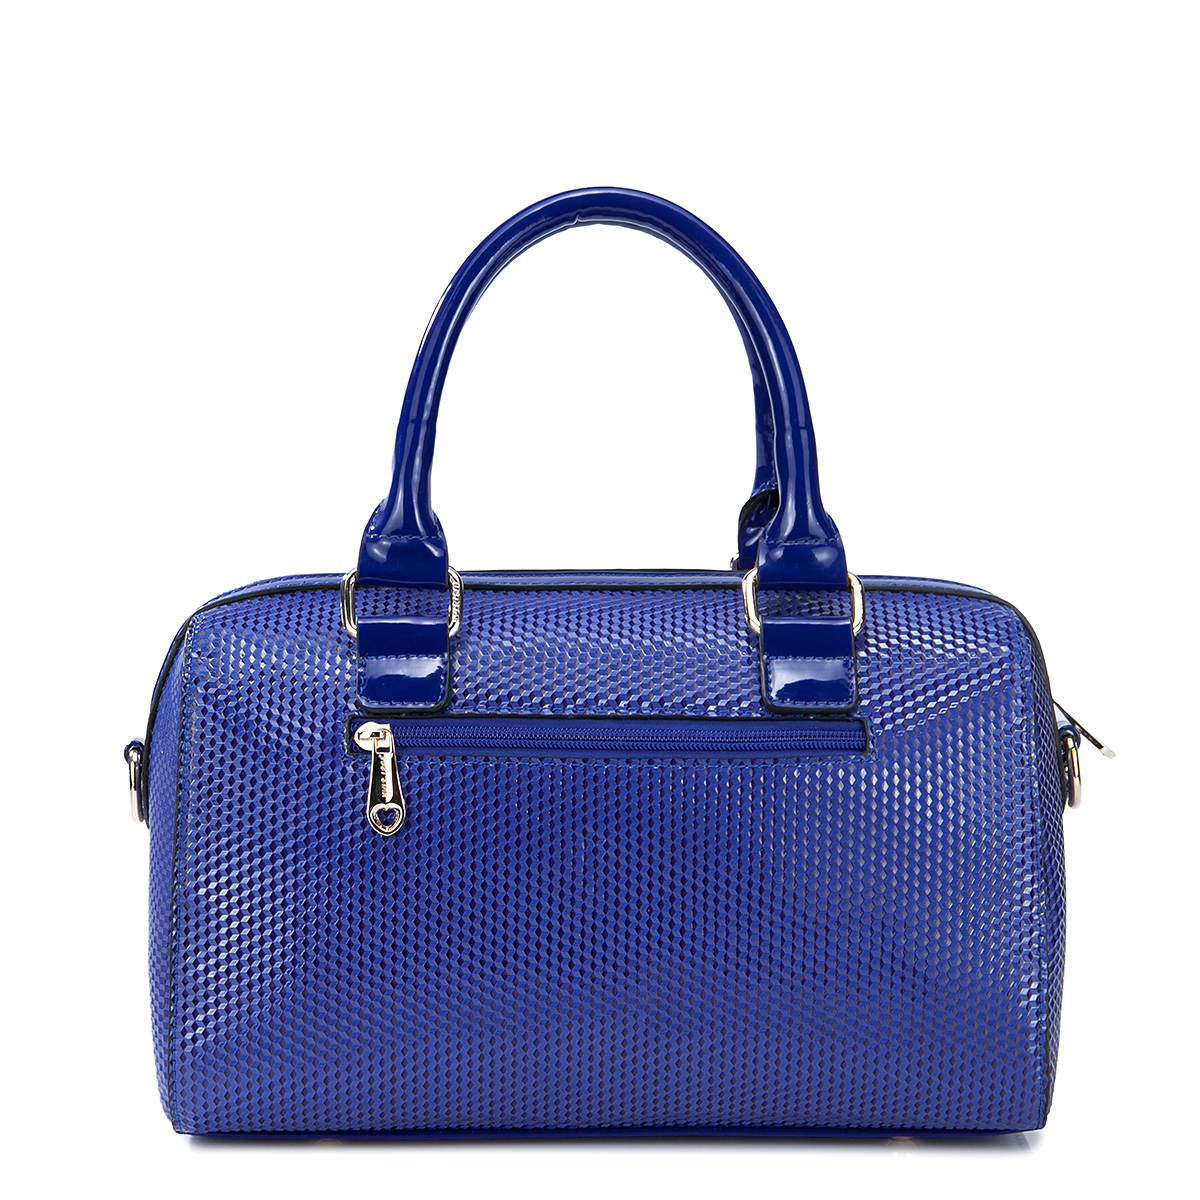 Wonderful Women Sea Anchor Print Blue Handbags Women39s Bags